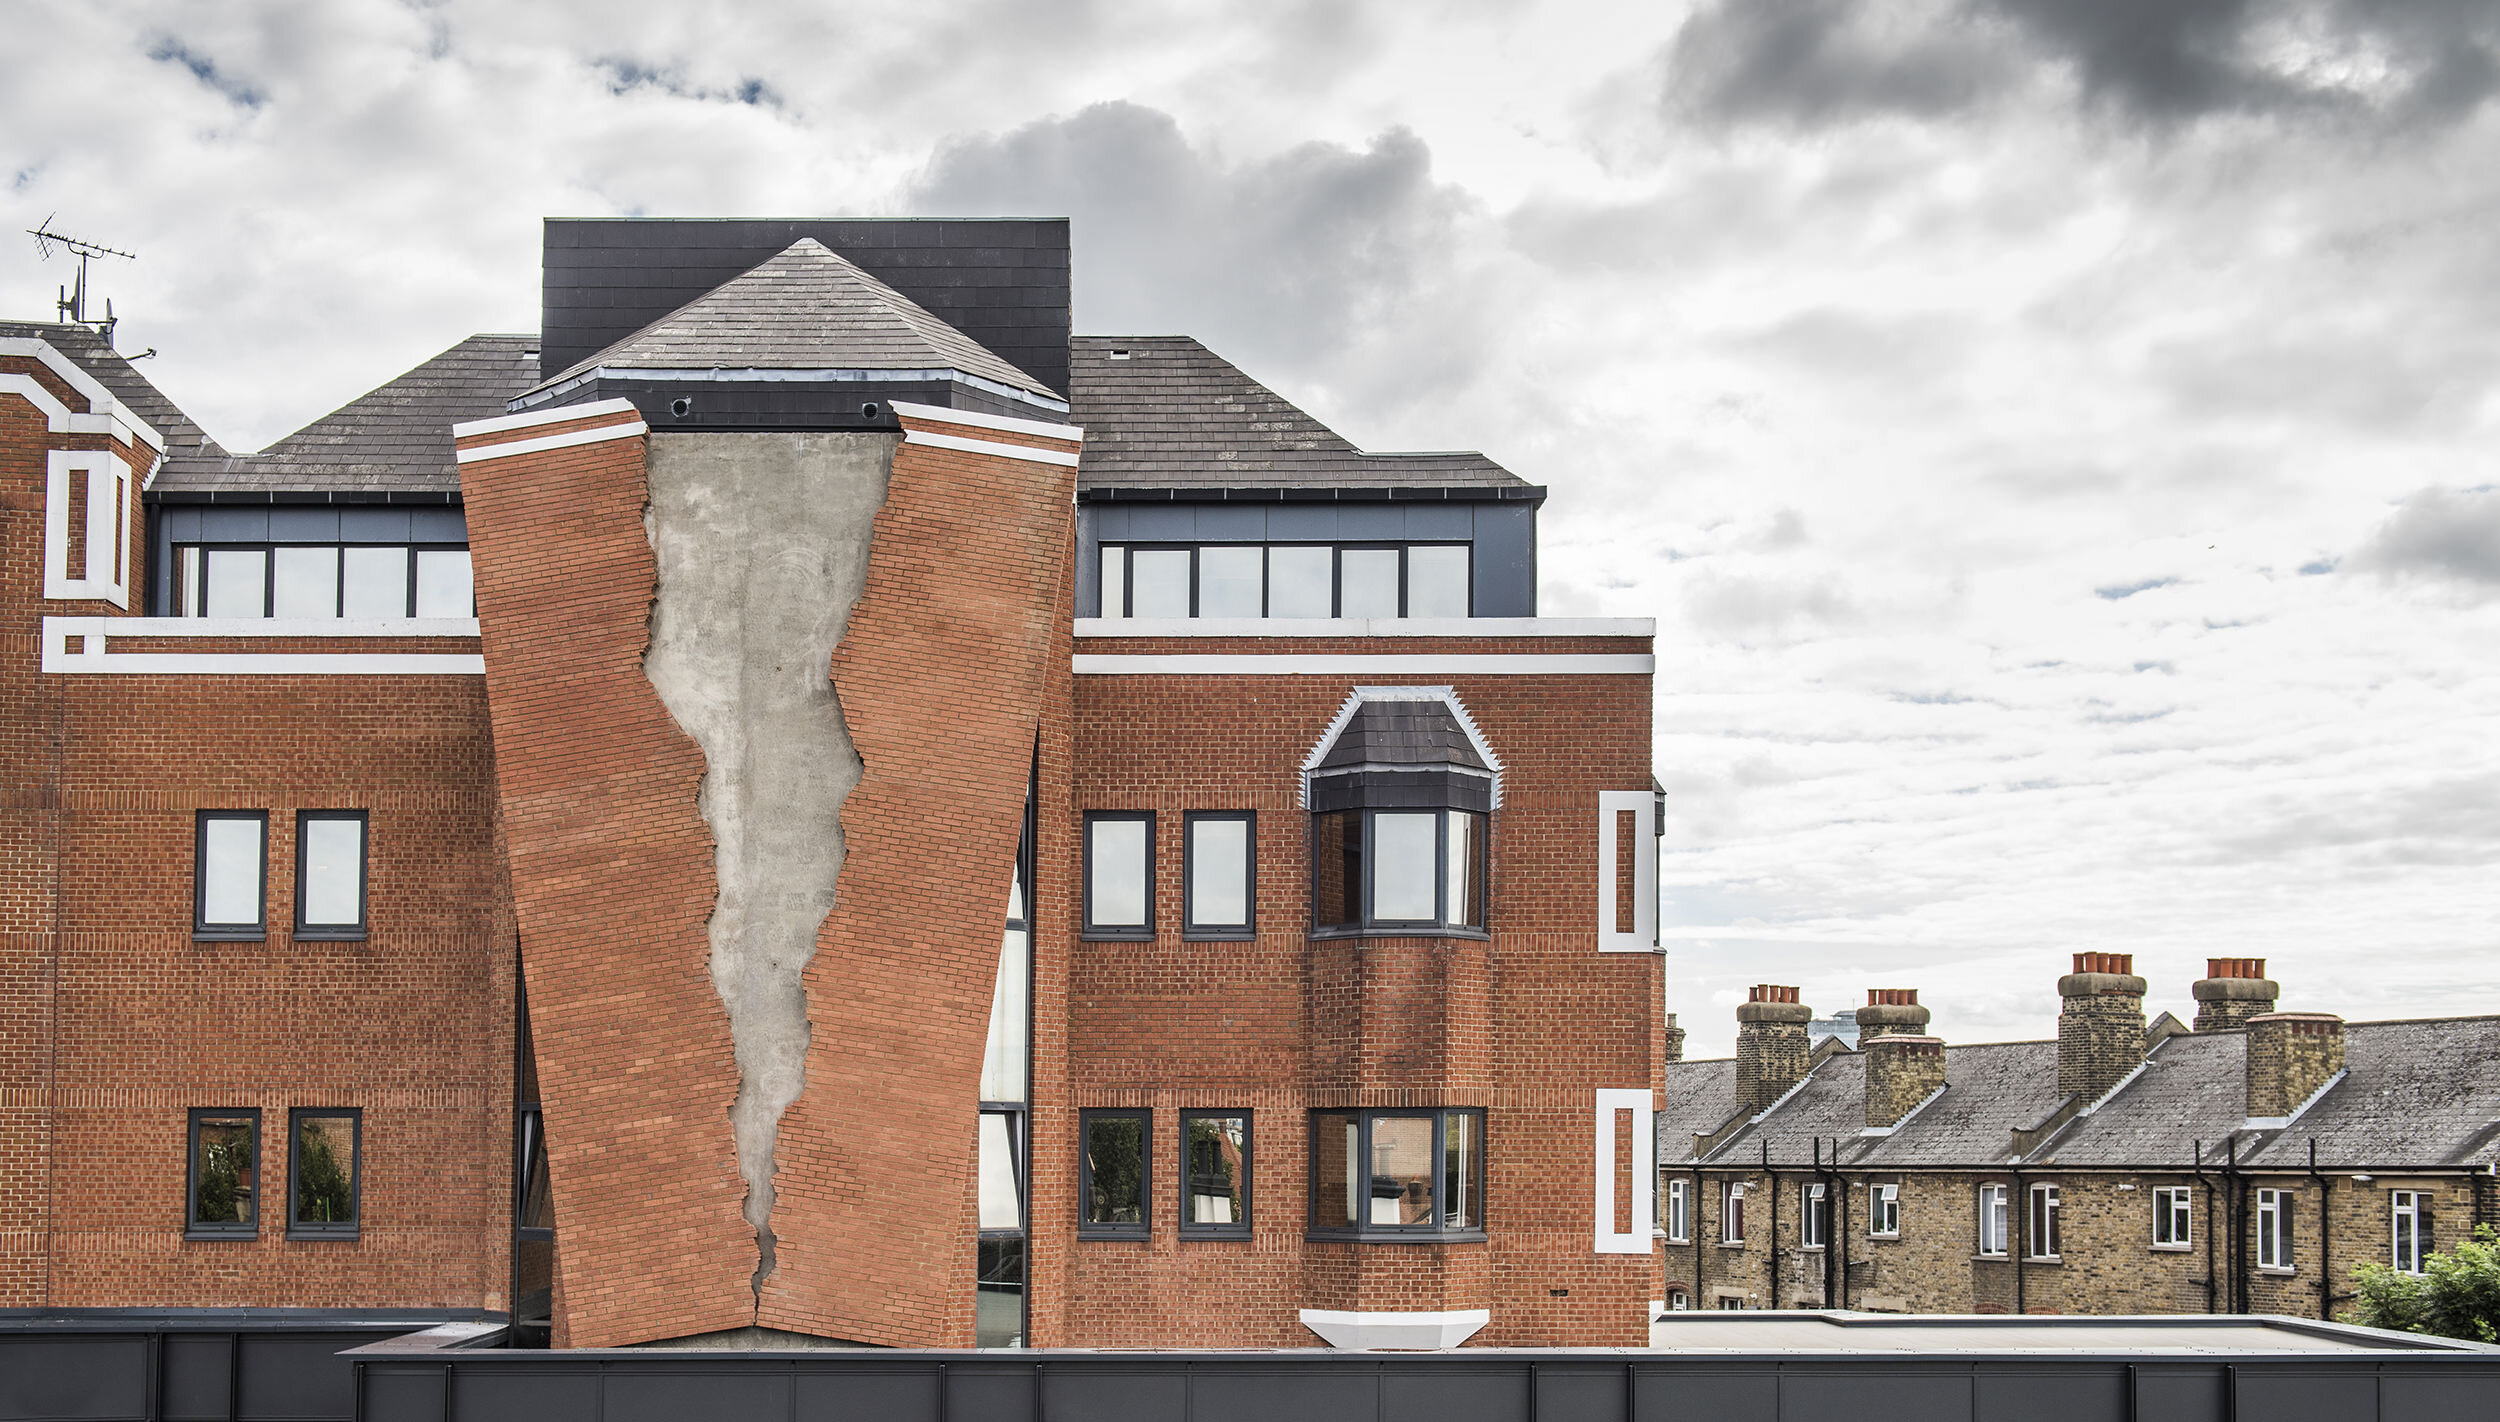 4. Alex Chinneck - Six pins and half a dozen needles - Image by Charles Emerson.jpg